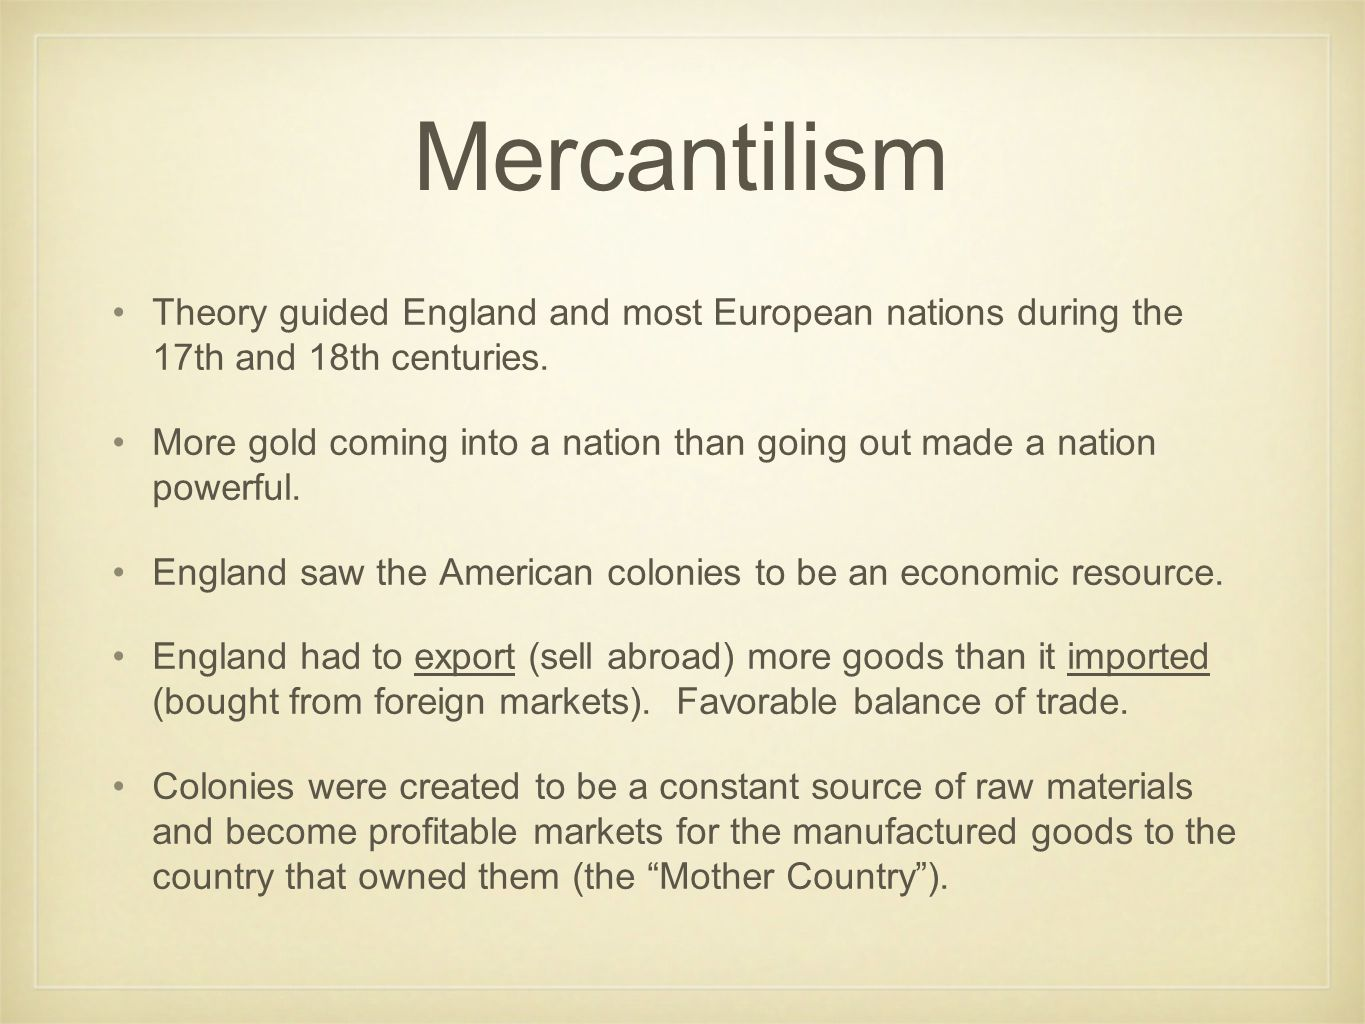 the economic theory of mercantilism during the britain control over american colonies Mercantilism affected the the economics of mostly the new england colonies and   how did mercantilism affect the political and economic development of  england's 13  england was also practicing this theory of mercantilism and they  needed to  ii and james tried in several ways to tighten their control over the  colonies.